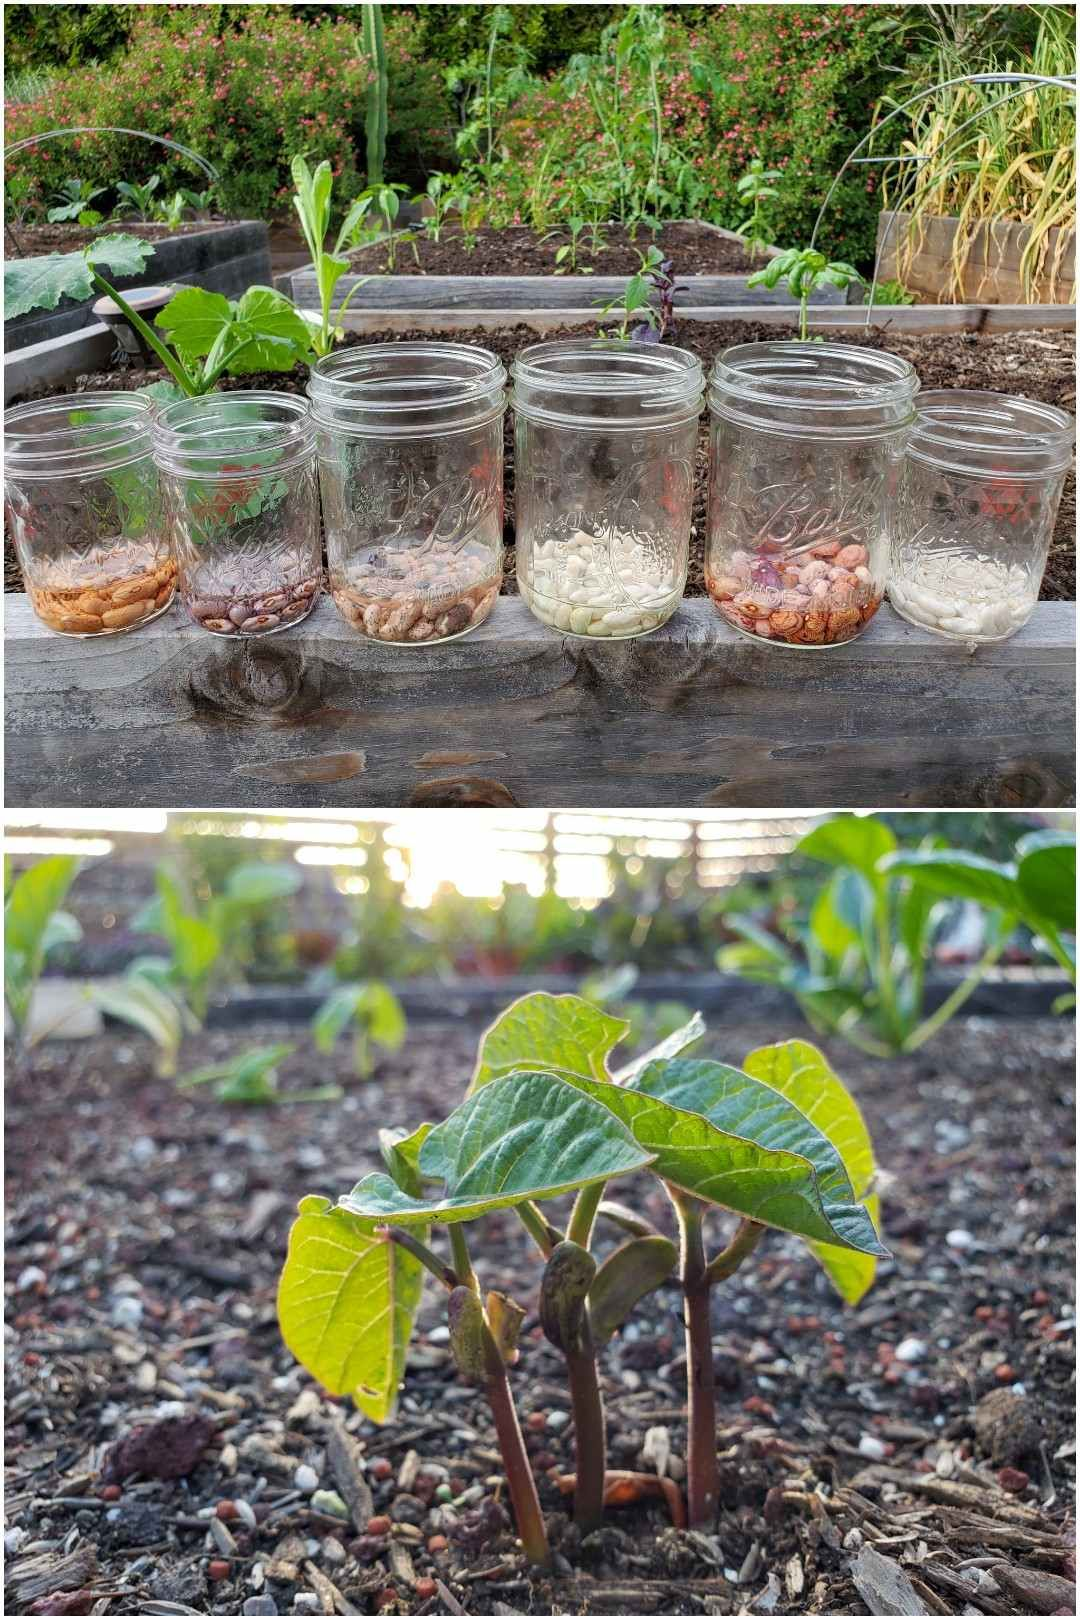 How To Grow Bushels Of Beans From Seed Bush Beans Pole Beans Homestead And Chill Pole Beans Bush Beans Growing Beans